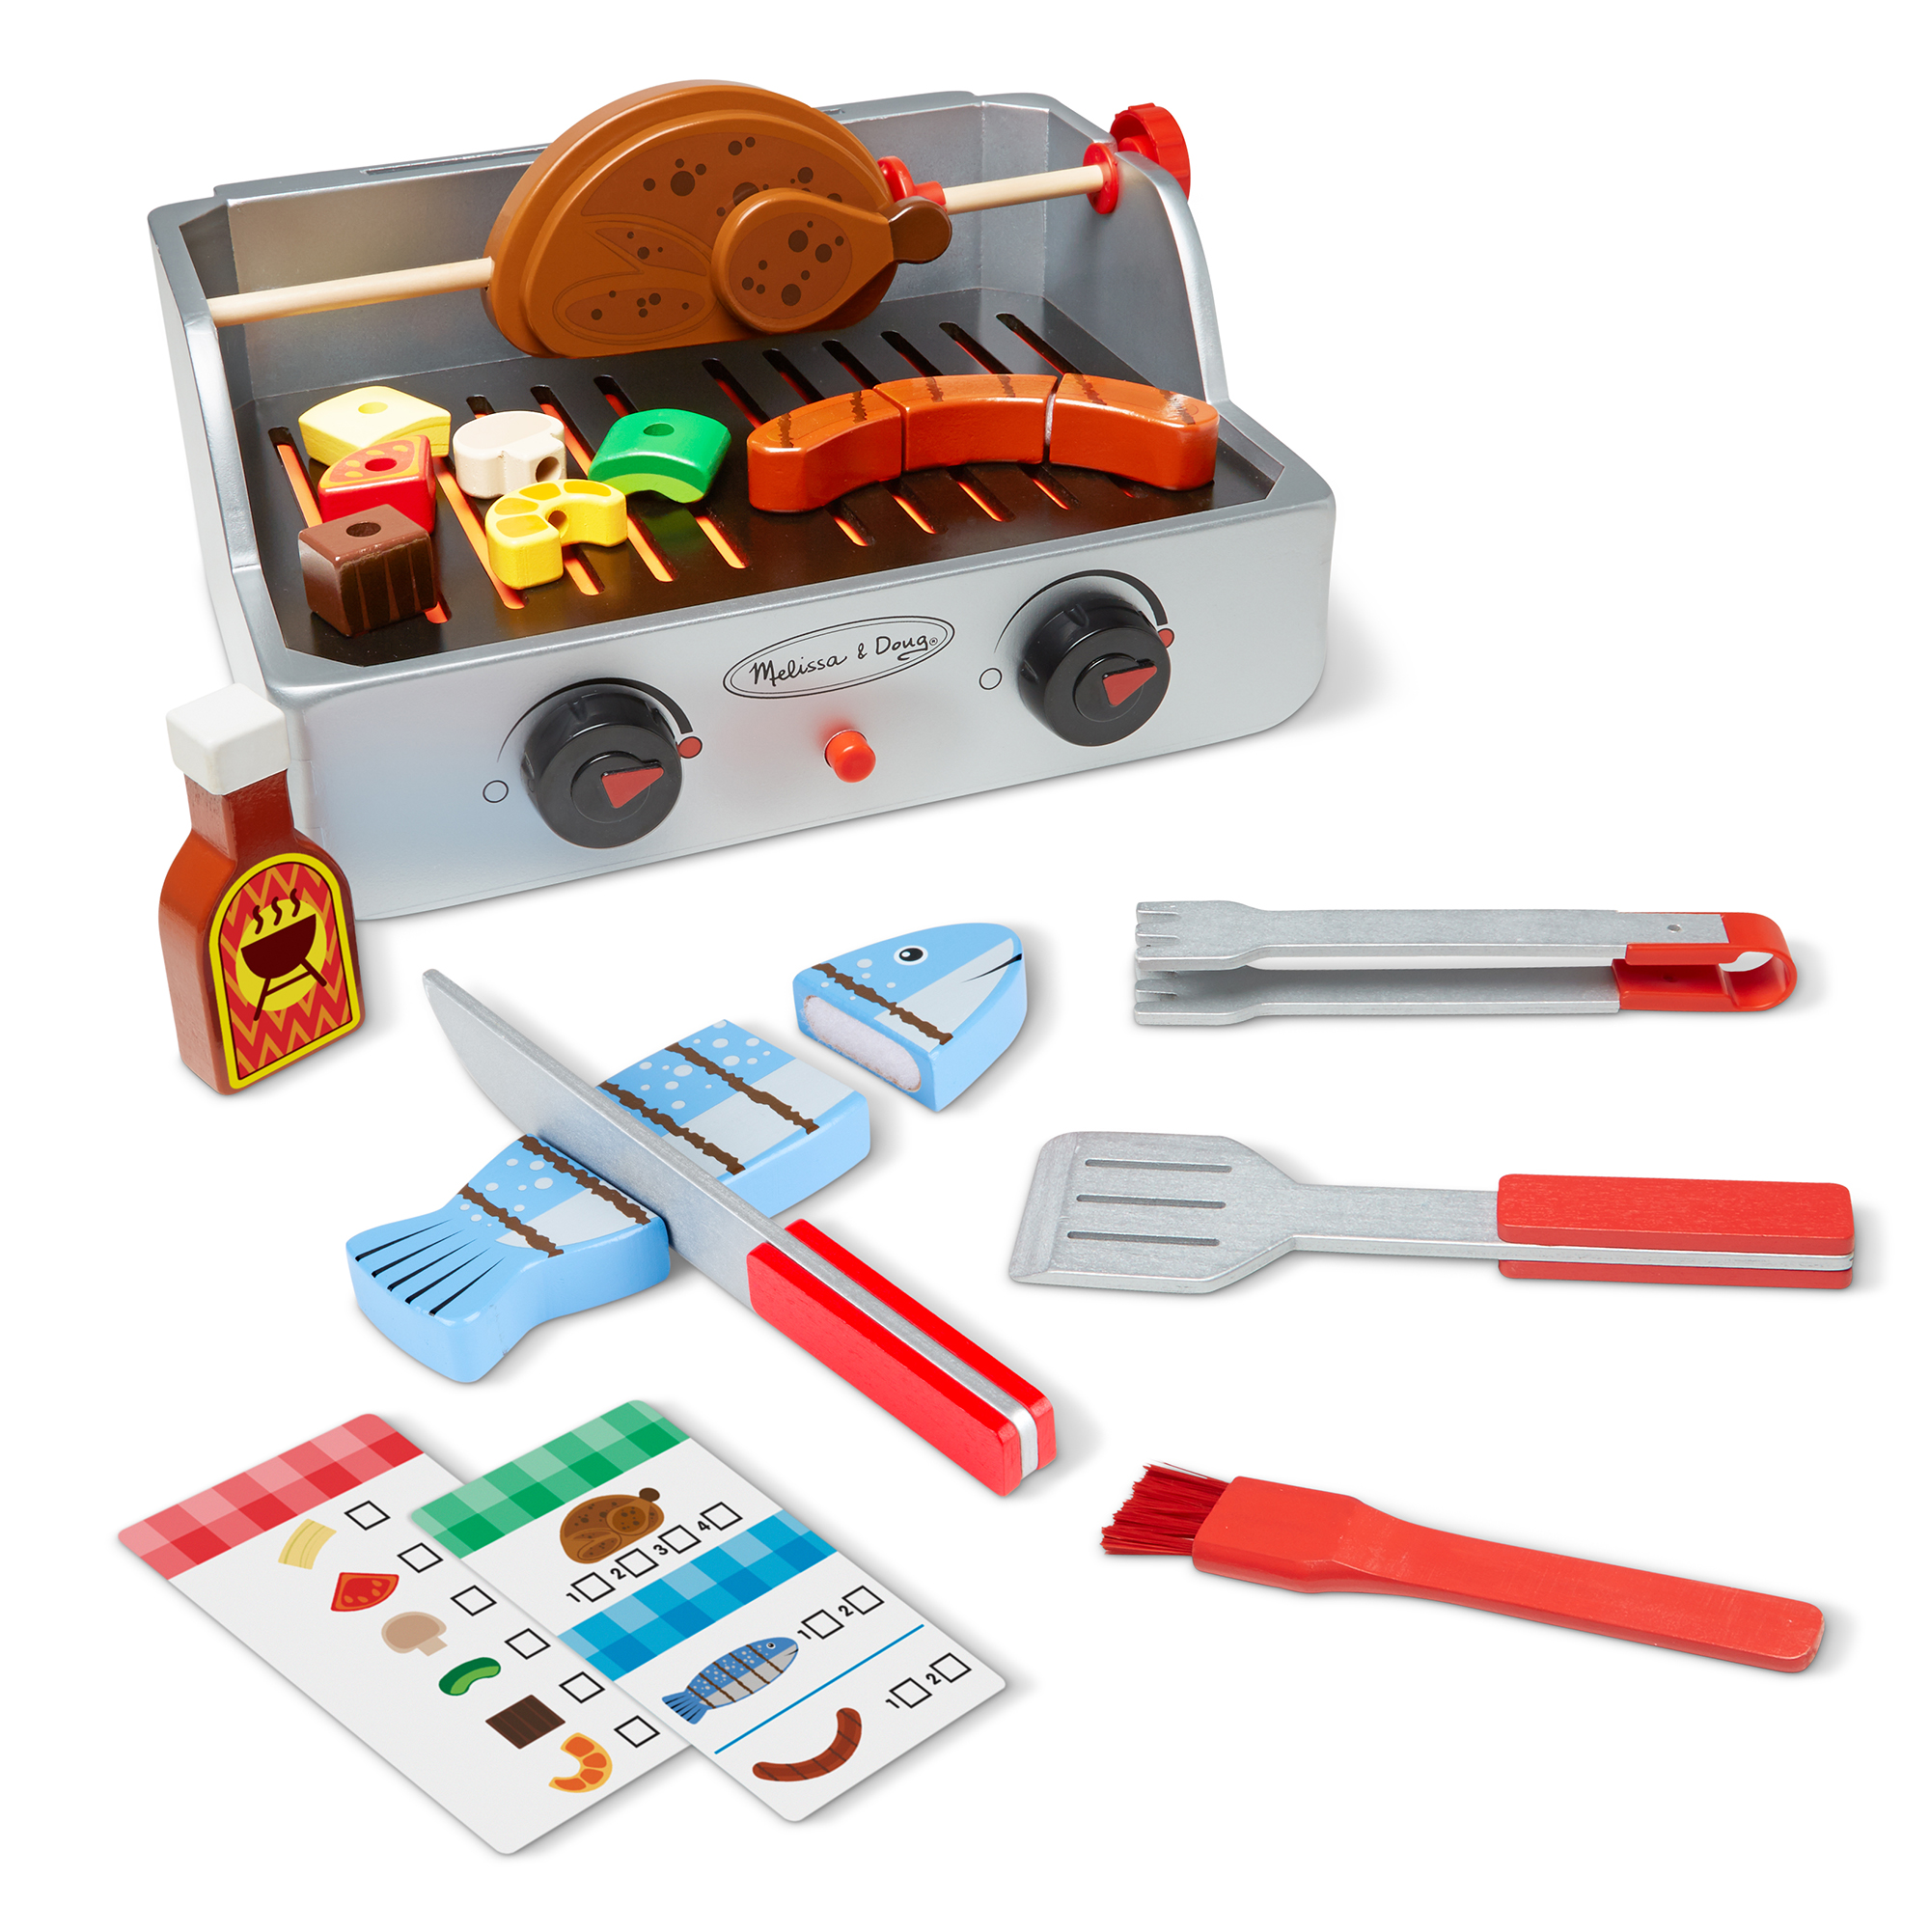 Rotisserie & Grill Barbecue Set 9269